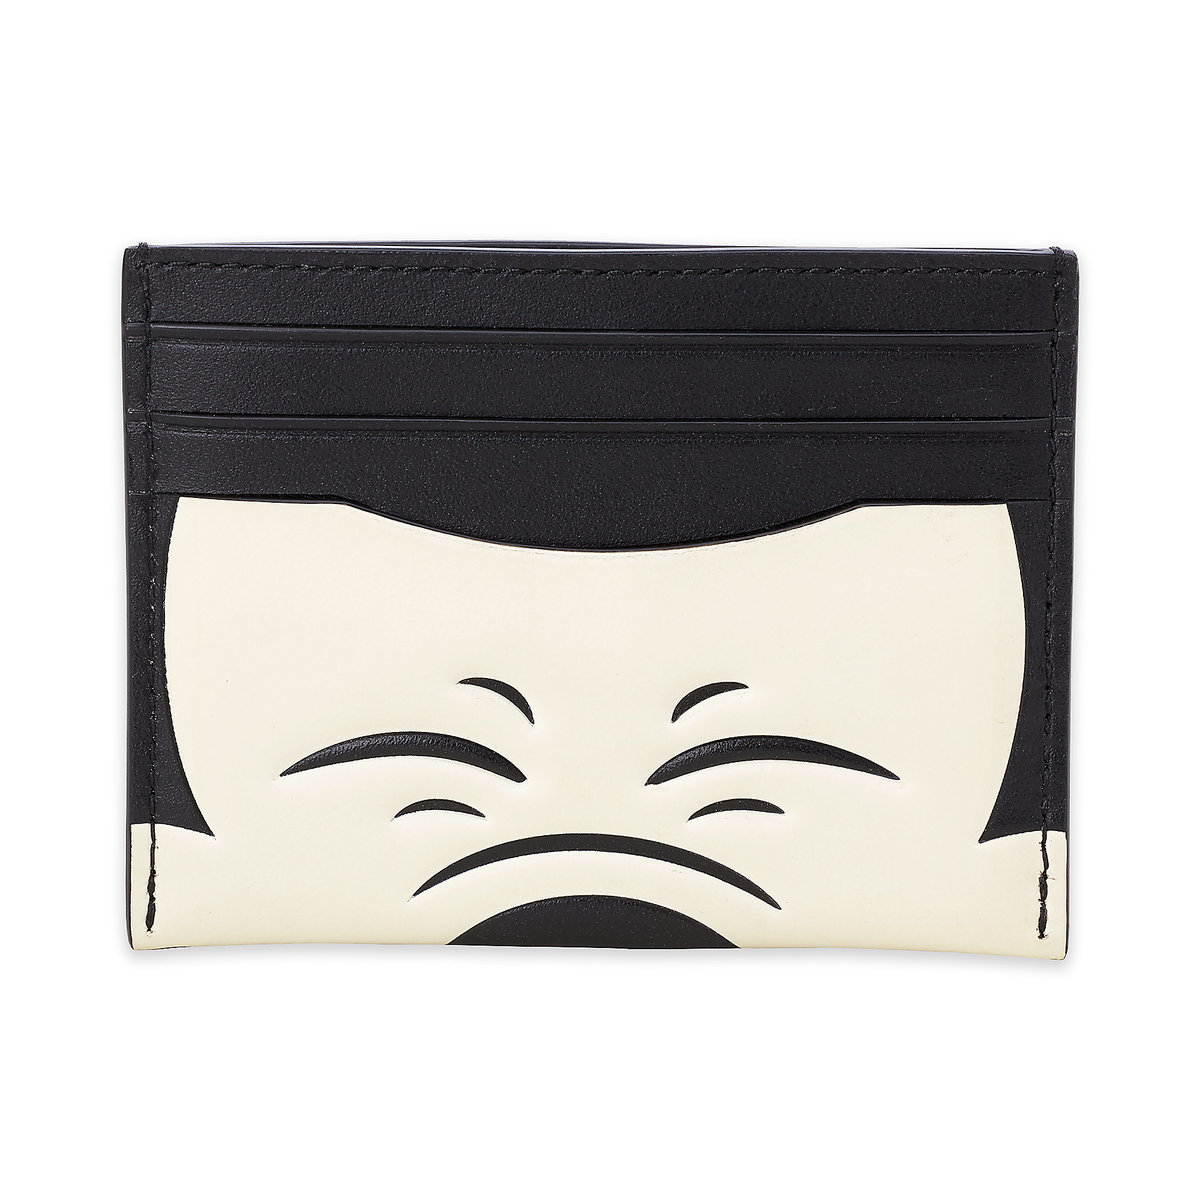 3130da8eca473 Product Image of Mickey Mouse Credit Card Case by COACH   1